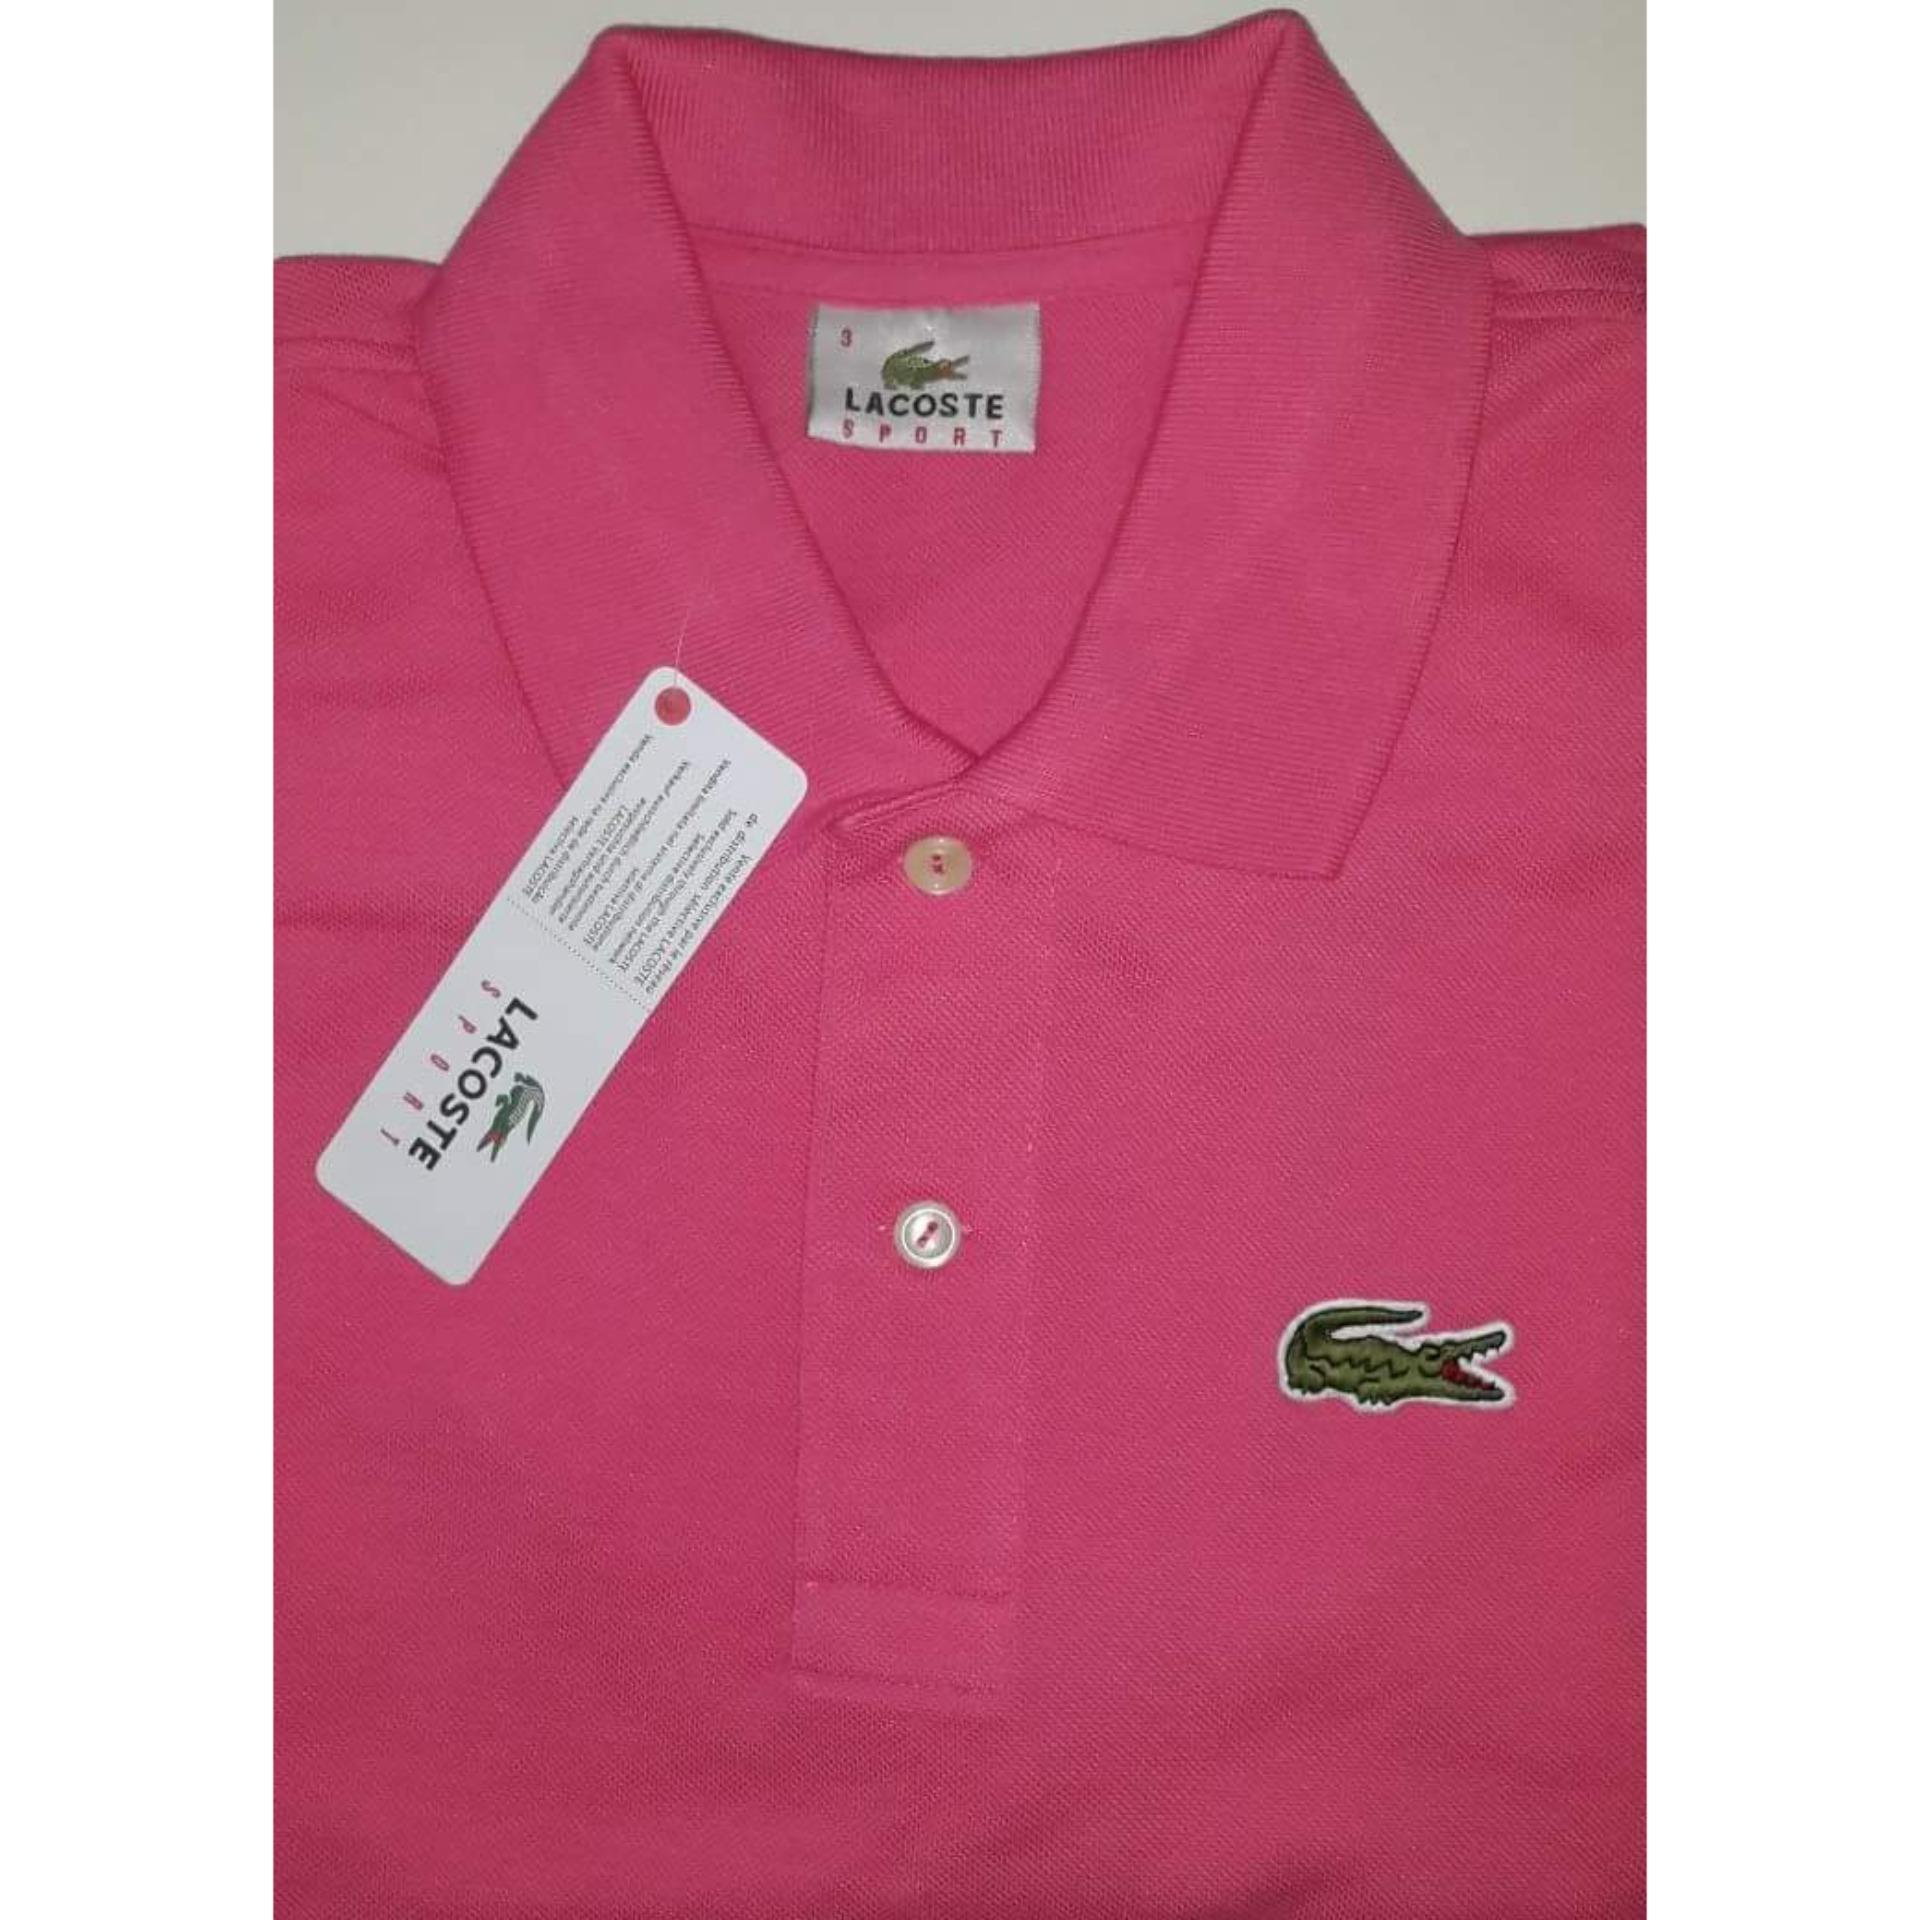 e9688269f5b3 Lacoste Polo Shirt Prices Philippines - BCD Tofu House